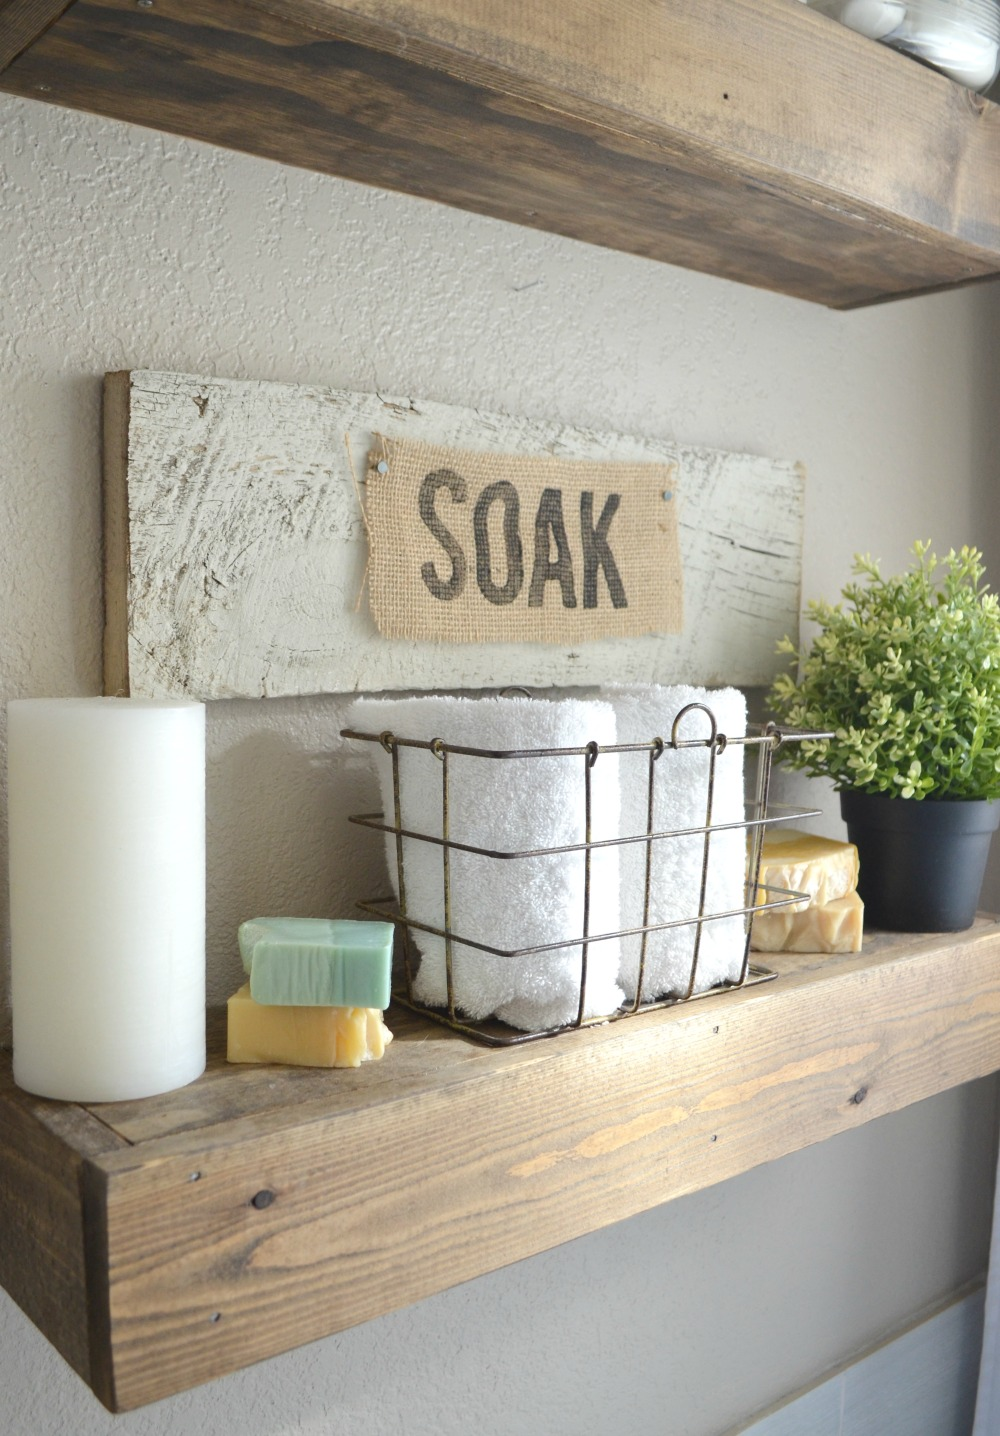 Burlap bathroom ideas - How To Make A Personalized Burlap Sign